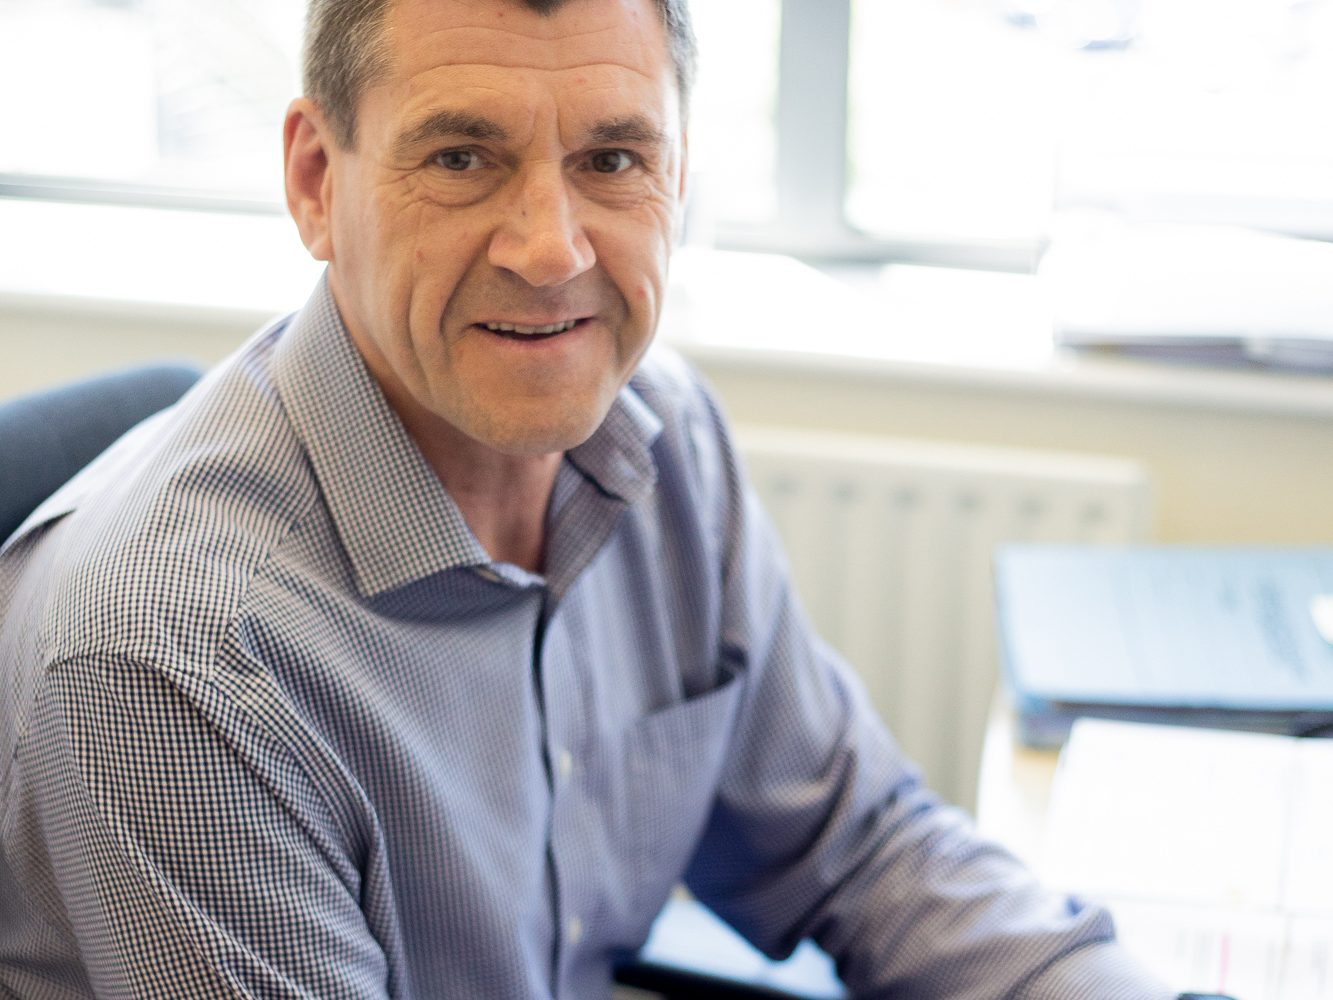 Bradford network chair retires from Cleckheaton accountants office